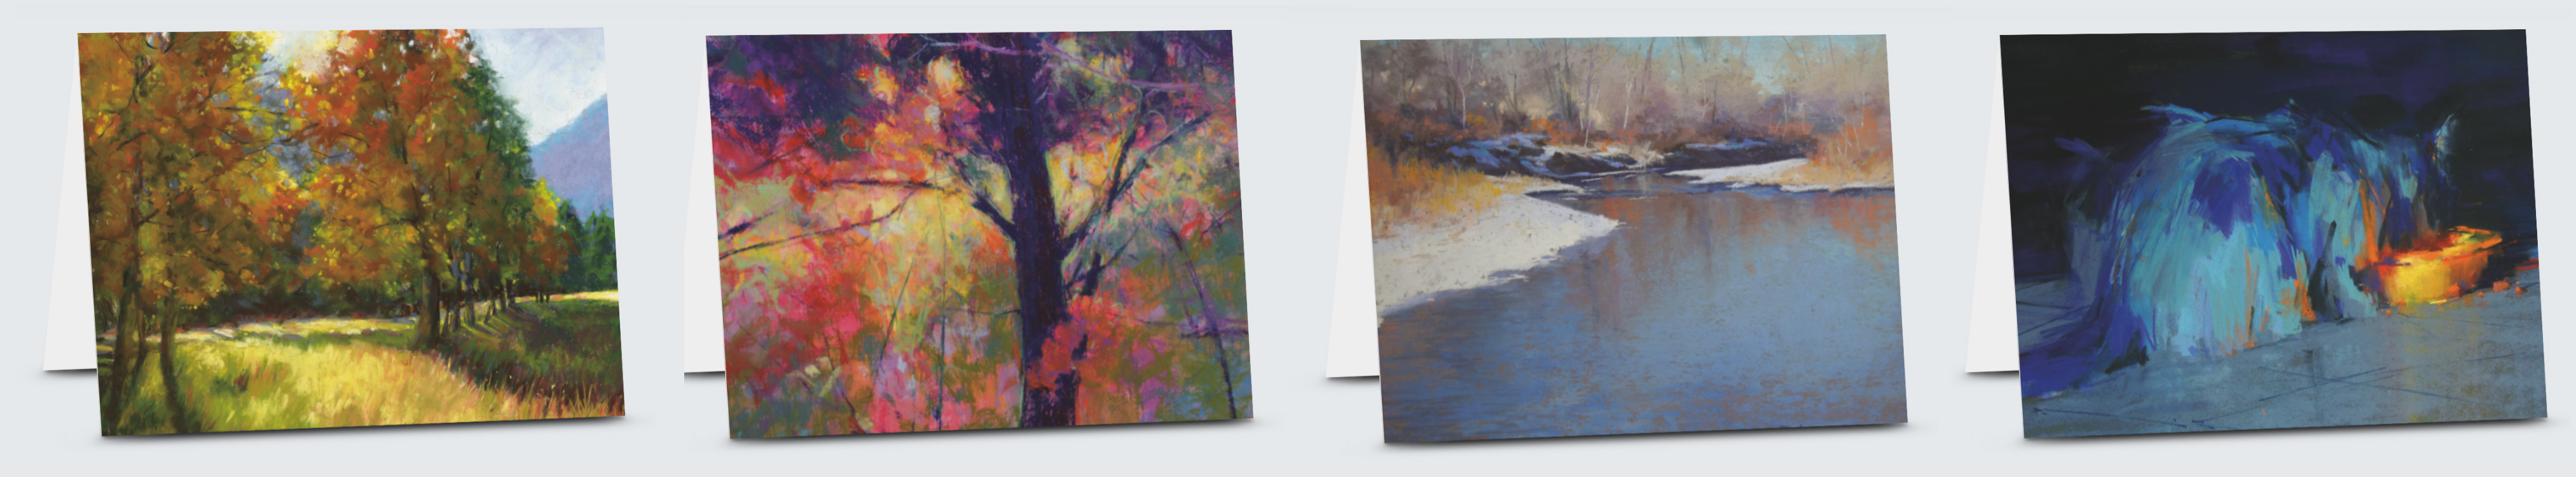 4 greeting cards all sized 5x7 with artist renderings.